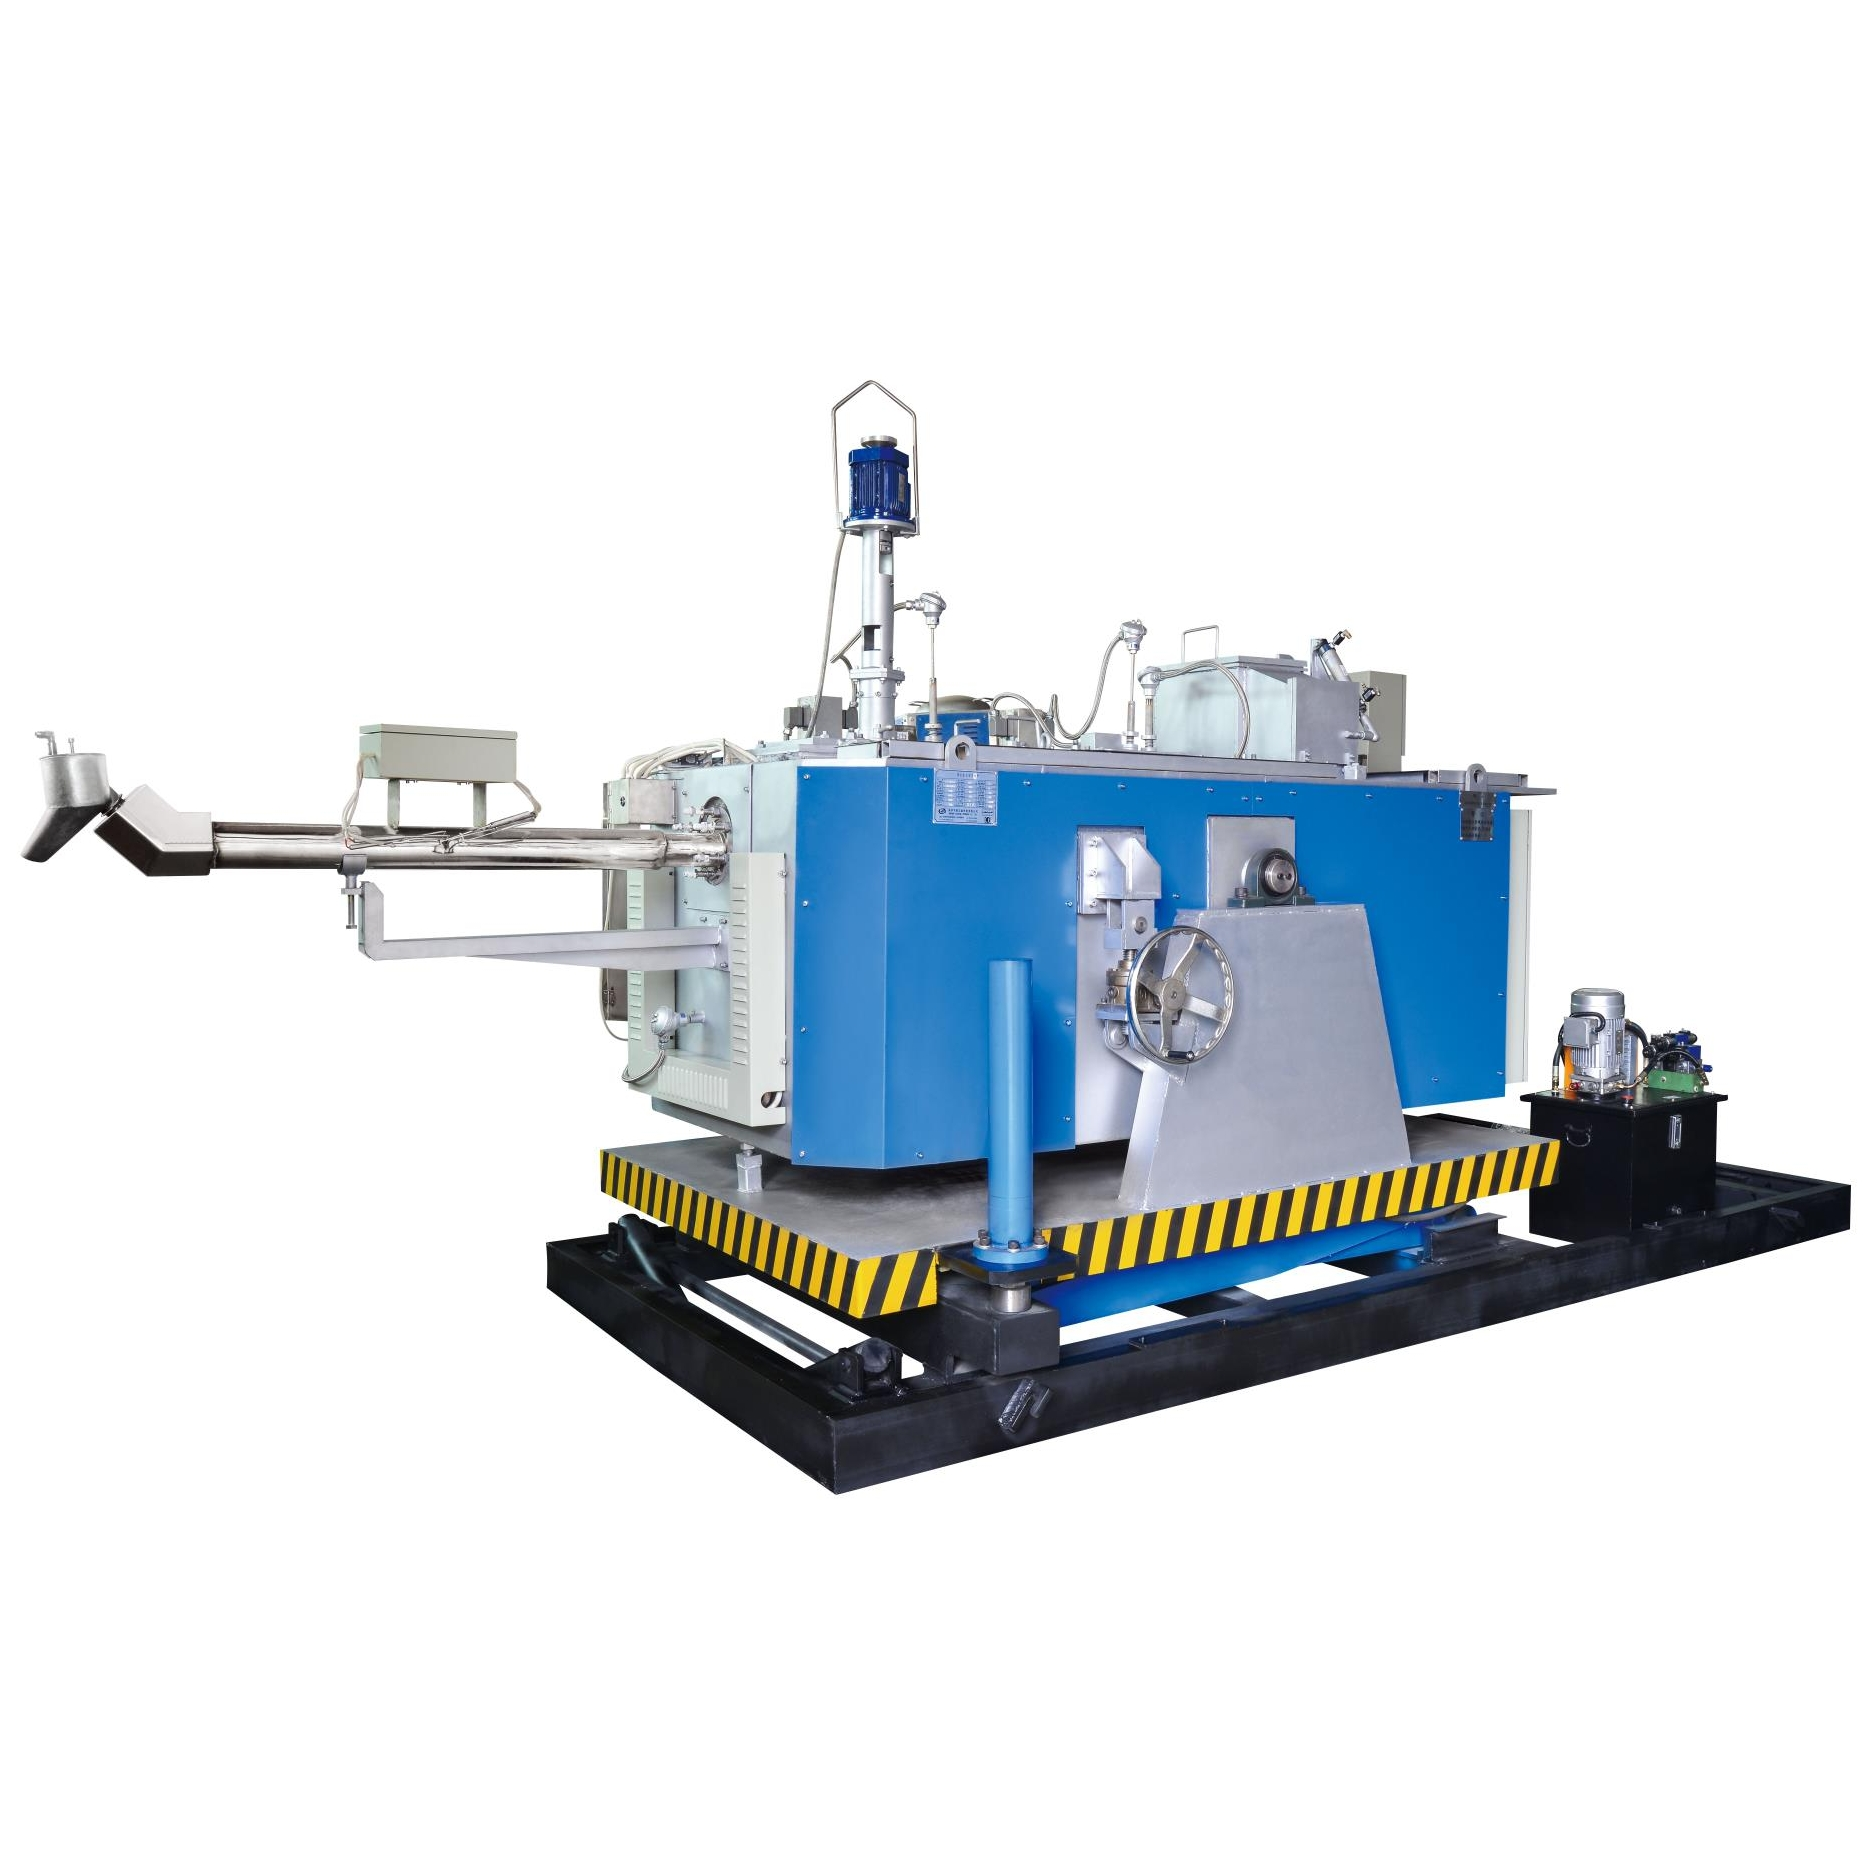 Electrical Magnesium Alloy Dosing Furnace 350kg/h